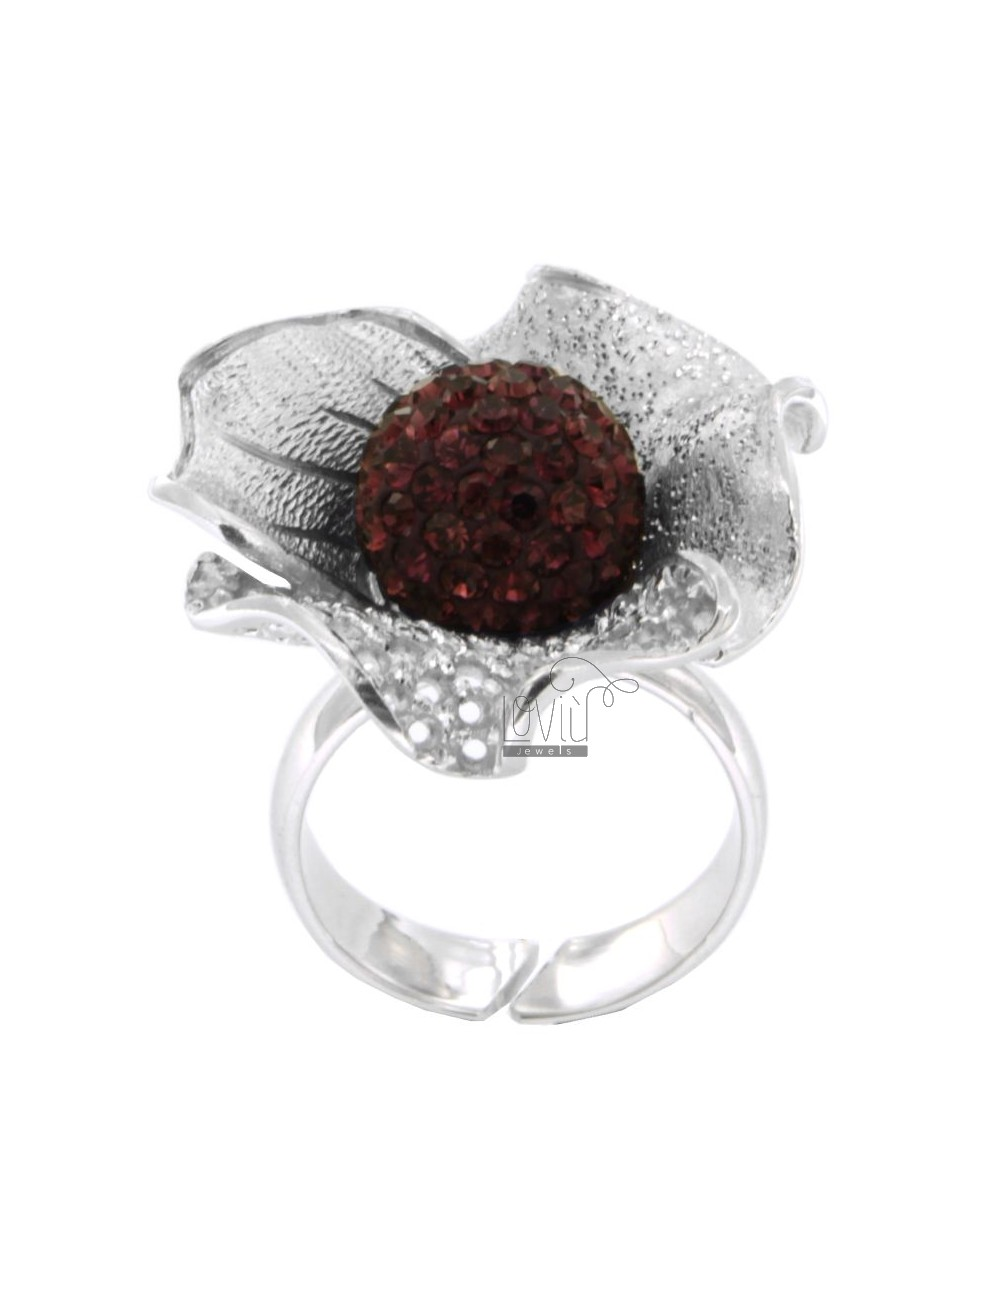 FLOWER AND DIAMOND RING IN PERFORATED AG RHODIUM 925 ‰ TIT AND BALL PURPLE CRYSTAL RESIN AND SIZE ADJUSTABLE